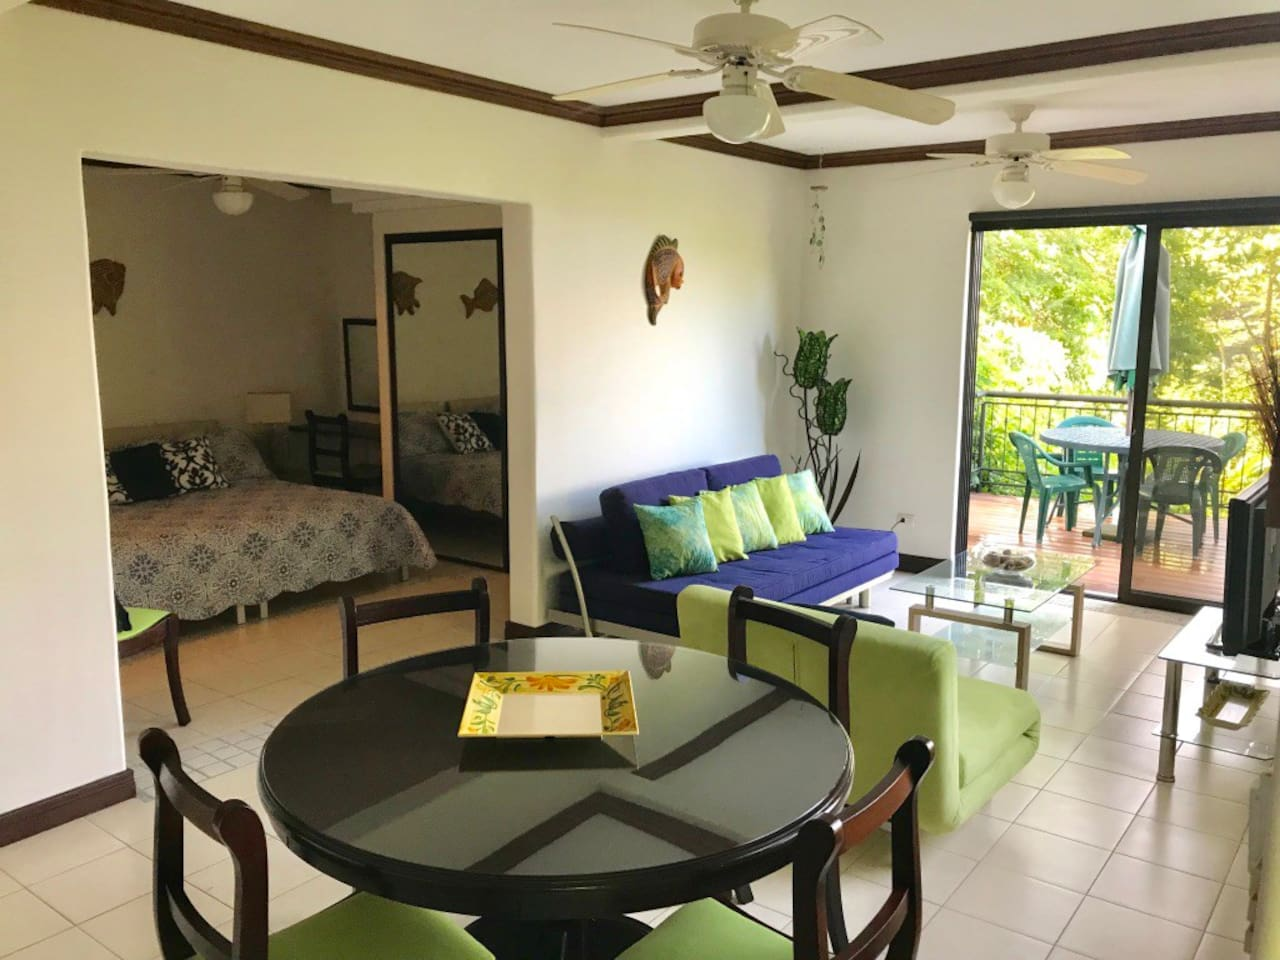 The studio apartment is spacious with a living area and dining area, bedroom, kitchen, bathroom  and private deck.